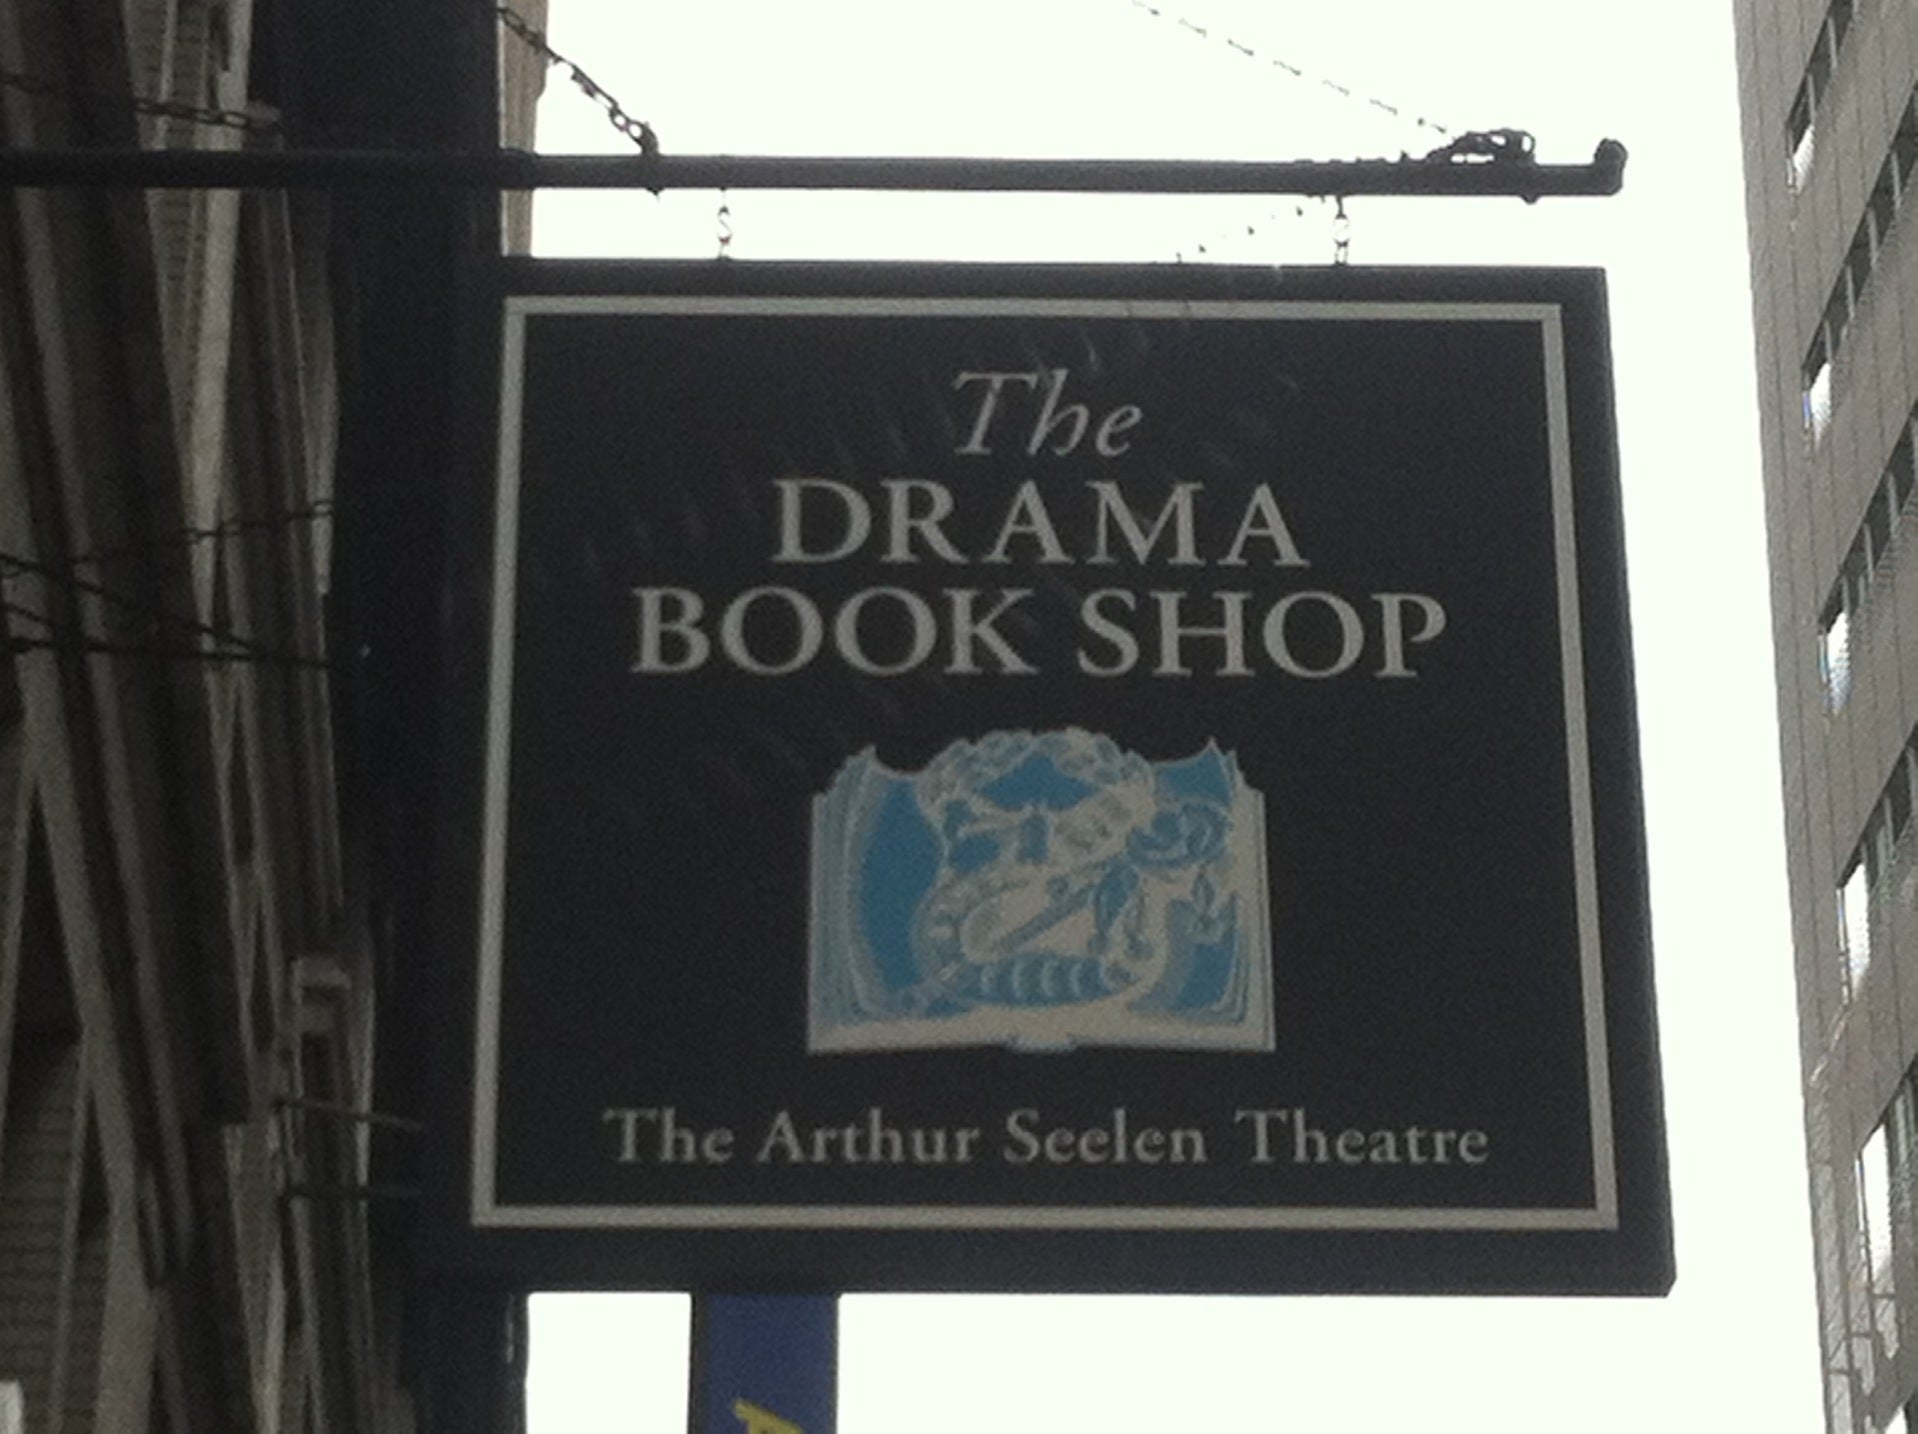 The Drama Book Shop